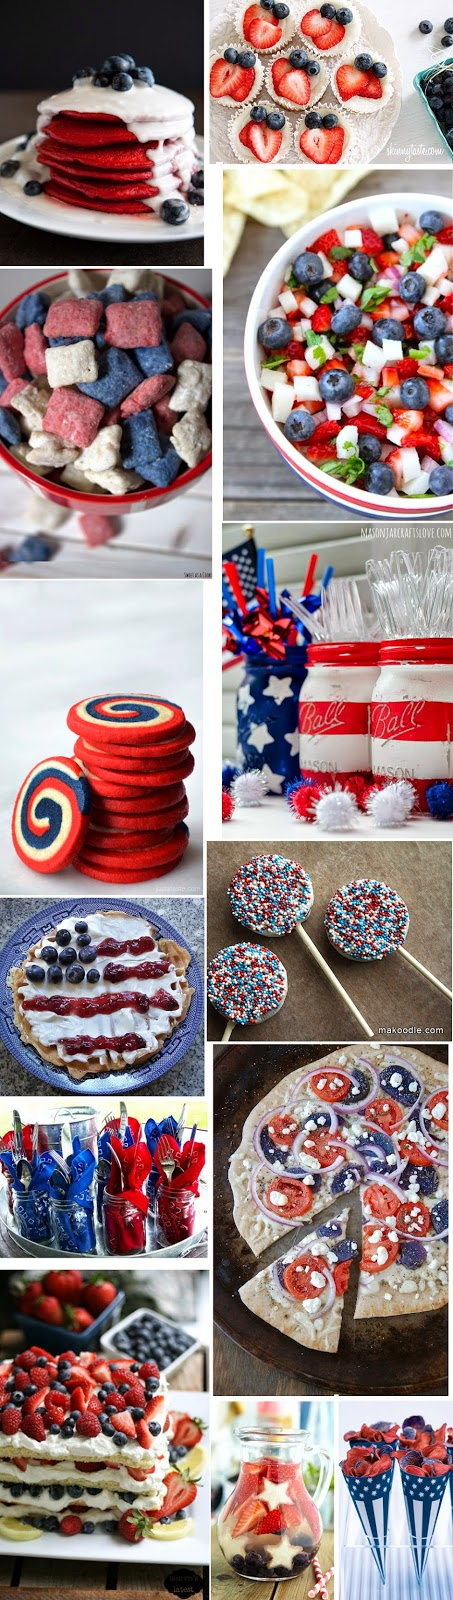 Patriotic Food + Decor for Labor Day | Luci's Morsels